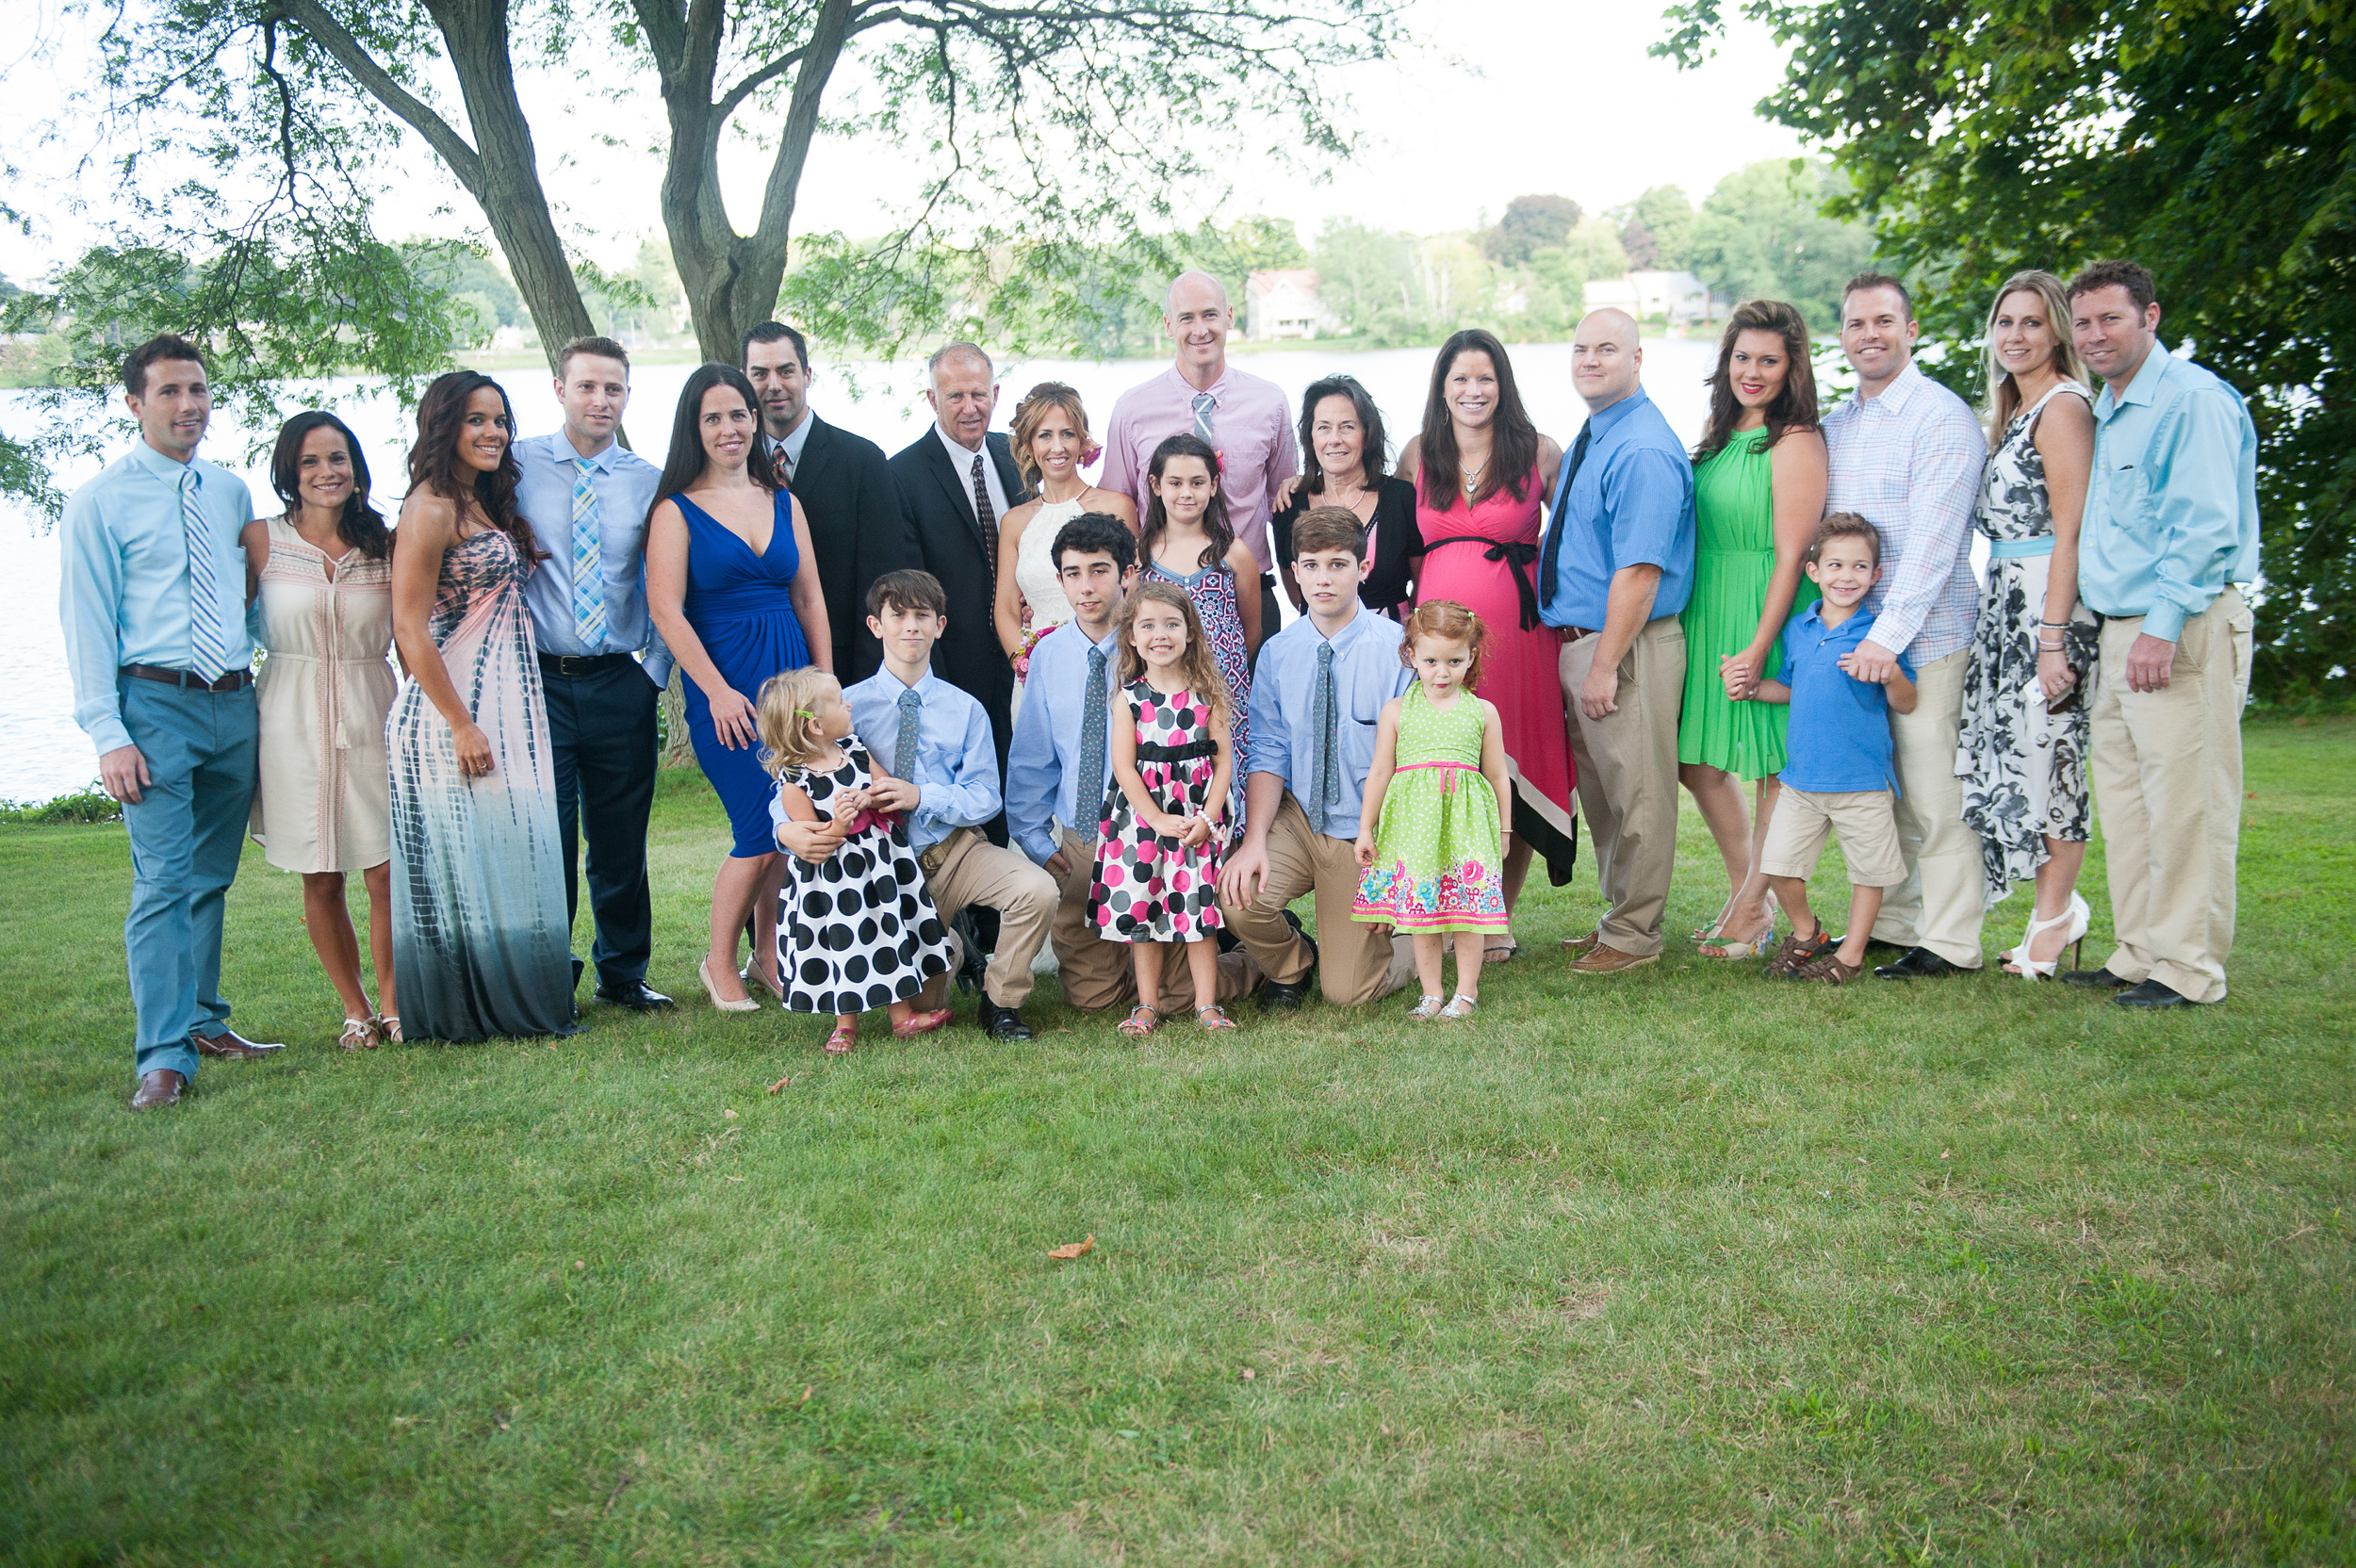 Large family picture at Park Wedding Ceremony Northshore MA photographer